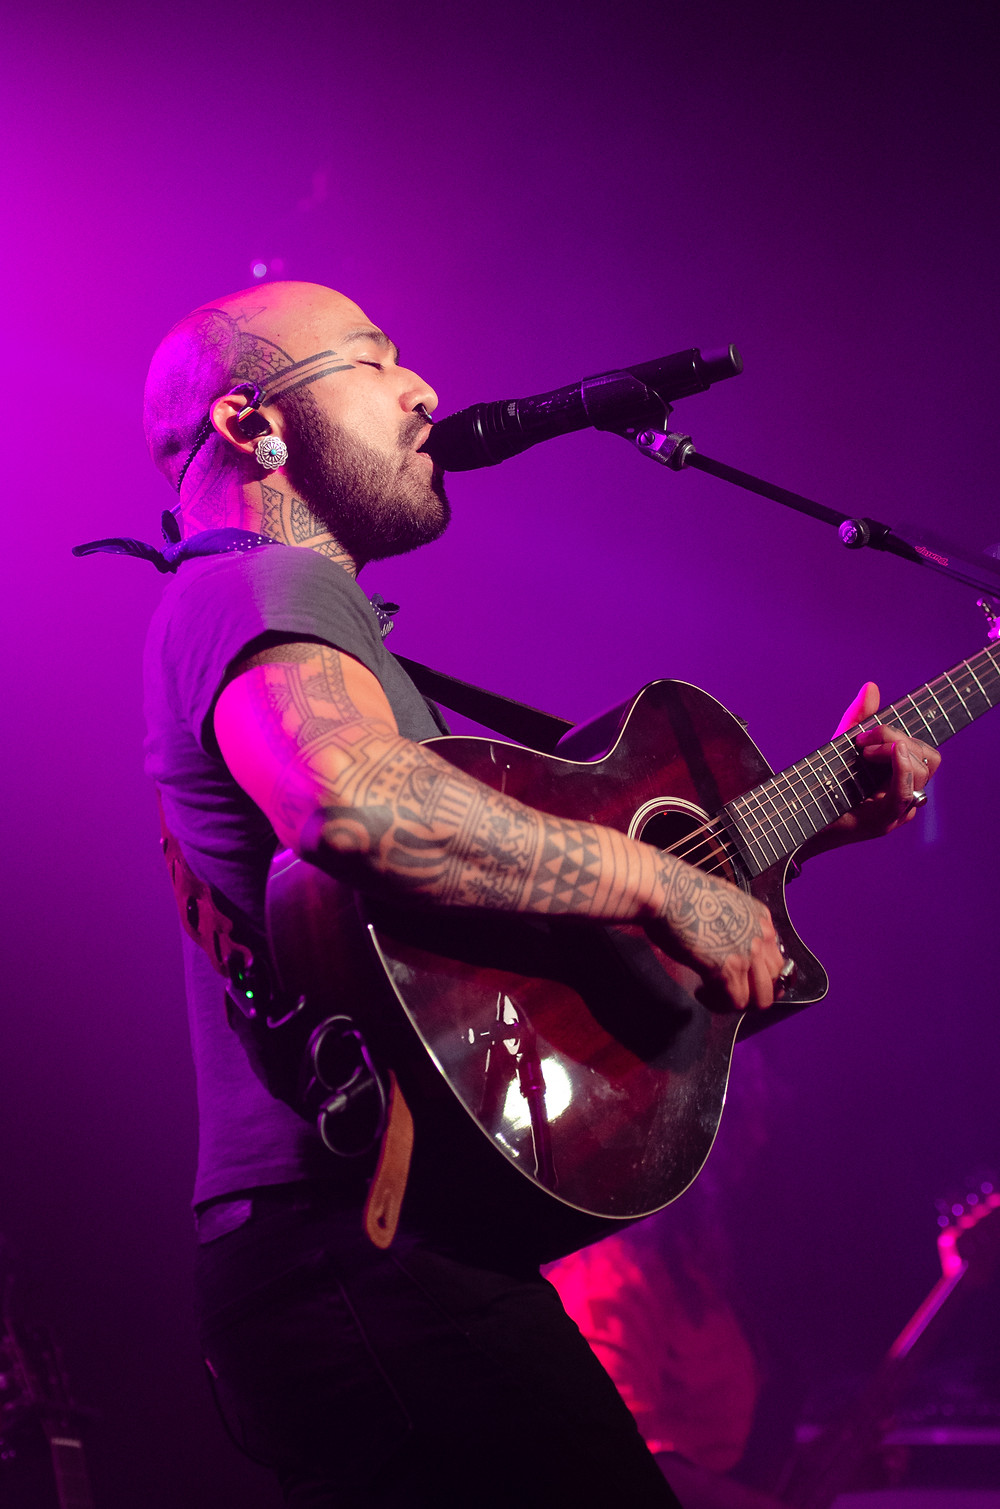 Nahko Bear singing and playing guitar with a colorful background at the Spanish Ballroom. By music photographer Bret Stein.